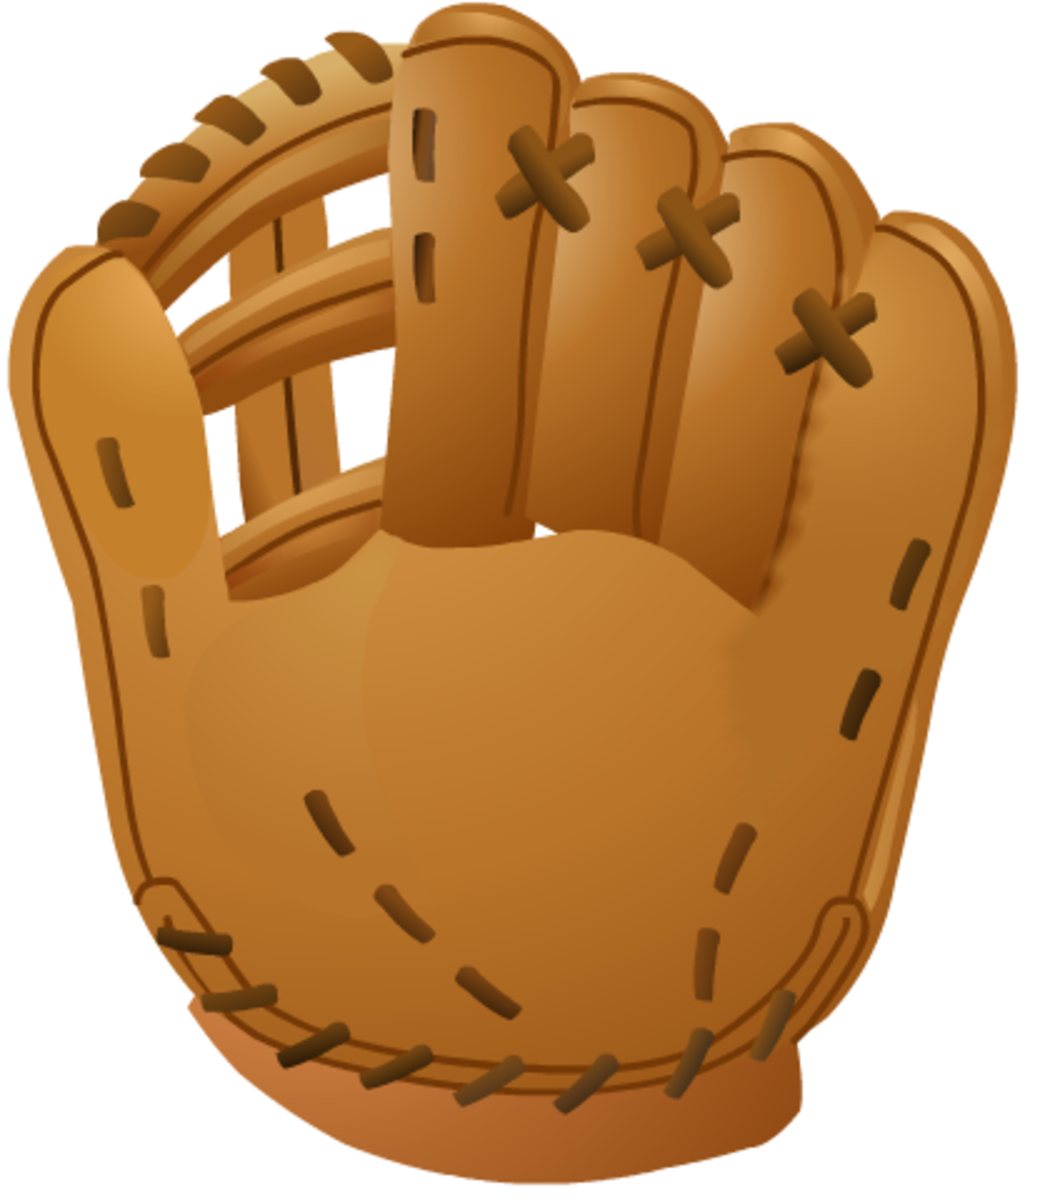 Free baseball clip art: plain baseball glove for a right-handed player